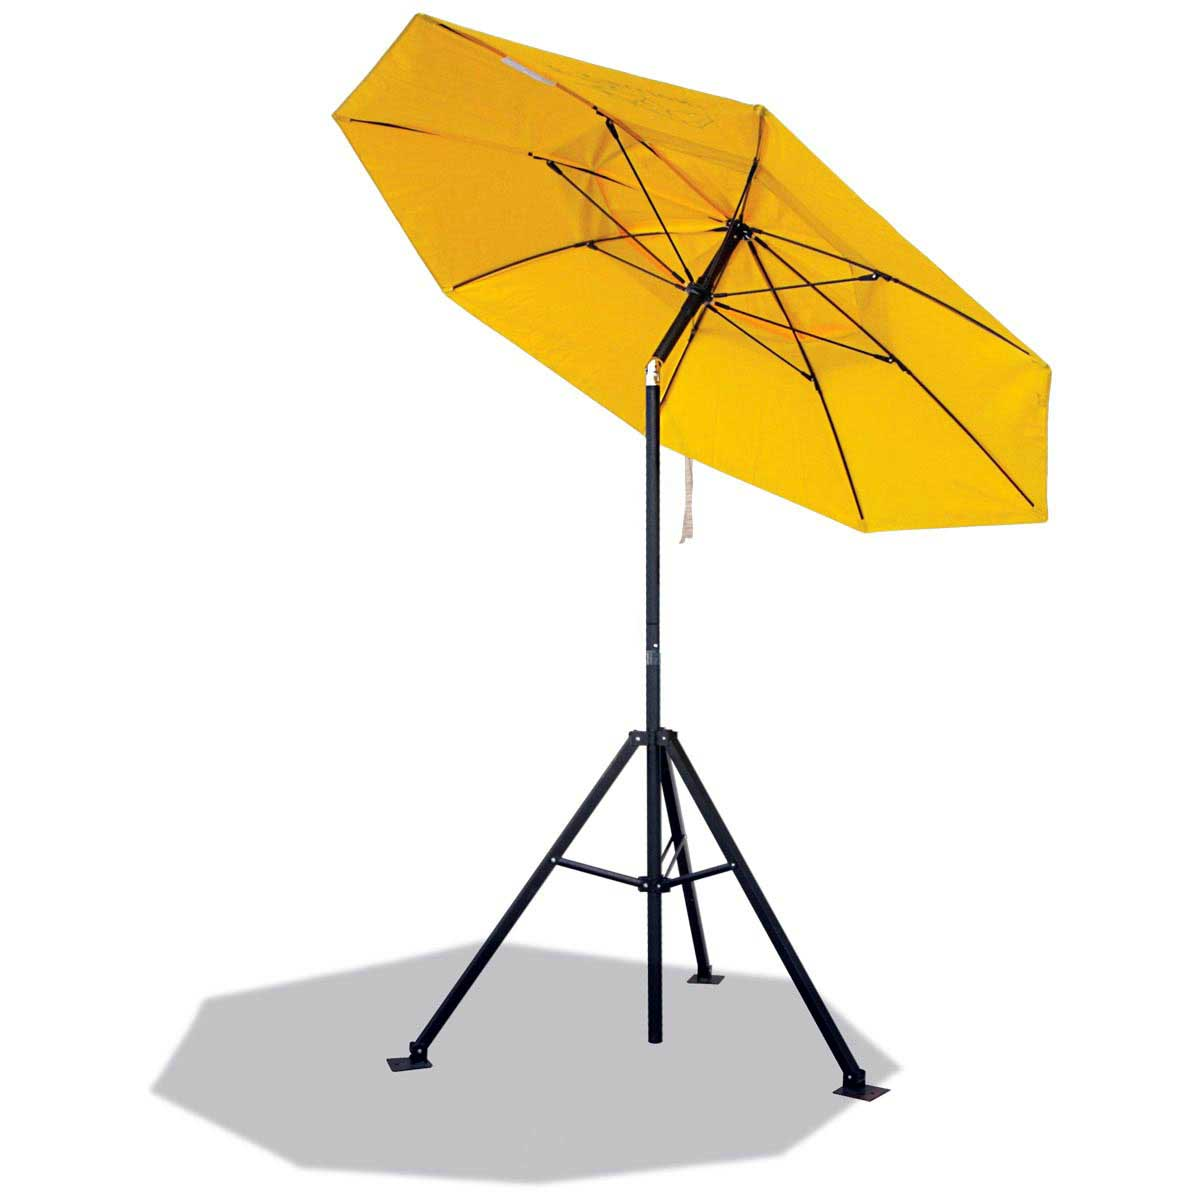 HEAVY DUTY INDUSTRIAL UMBRELLA AND TRIPOD STAND COMBO SET. Pack 1. UB150